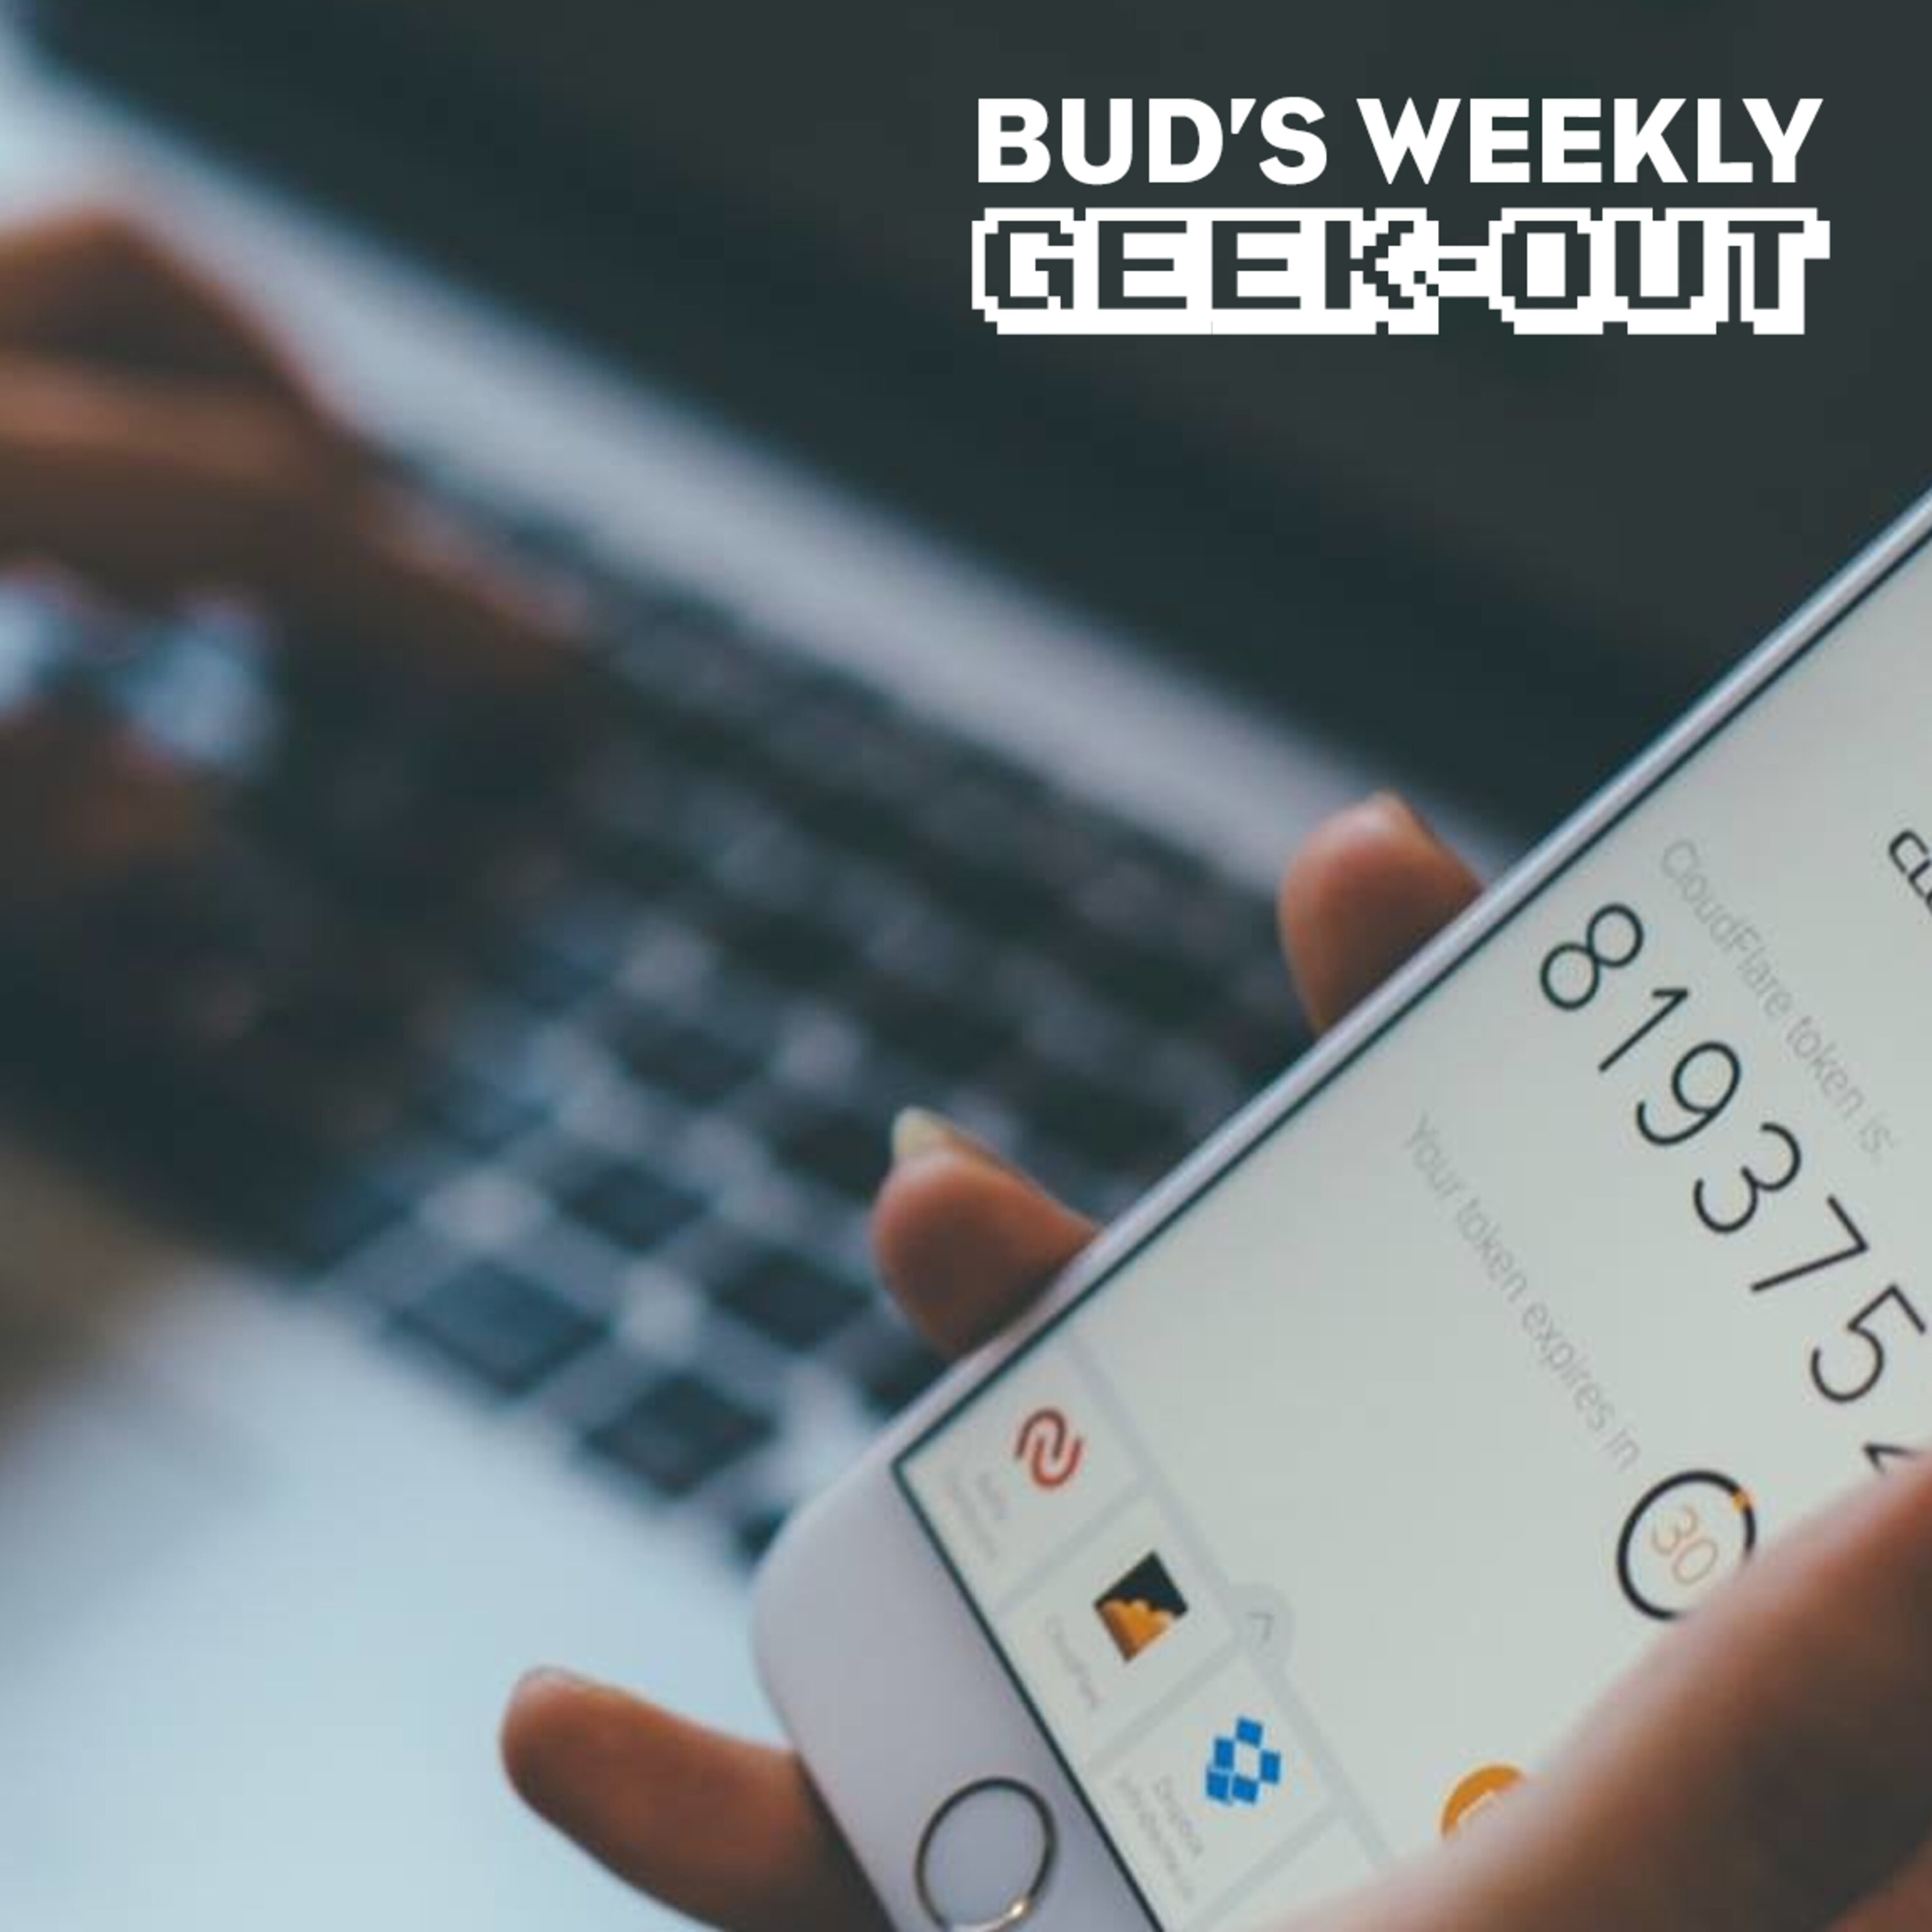 Bud's Weekly Geek-out! 20210519 - authenticator apps